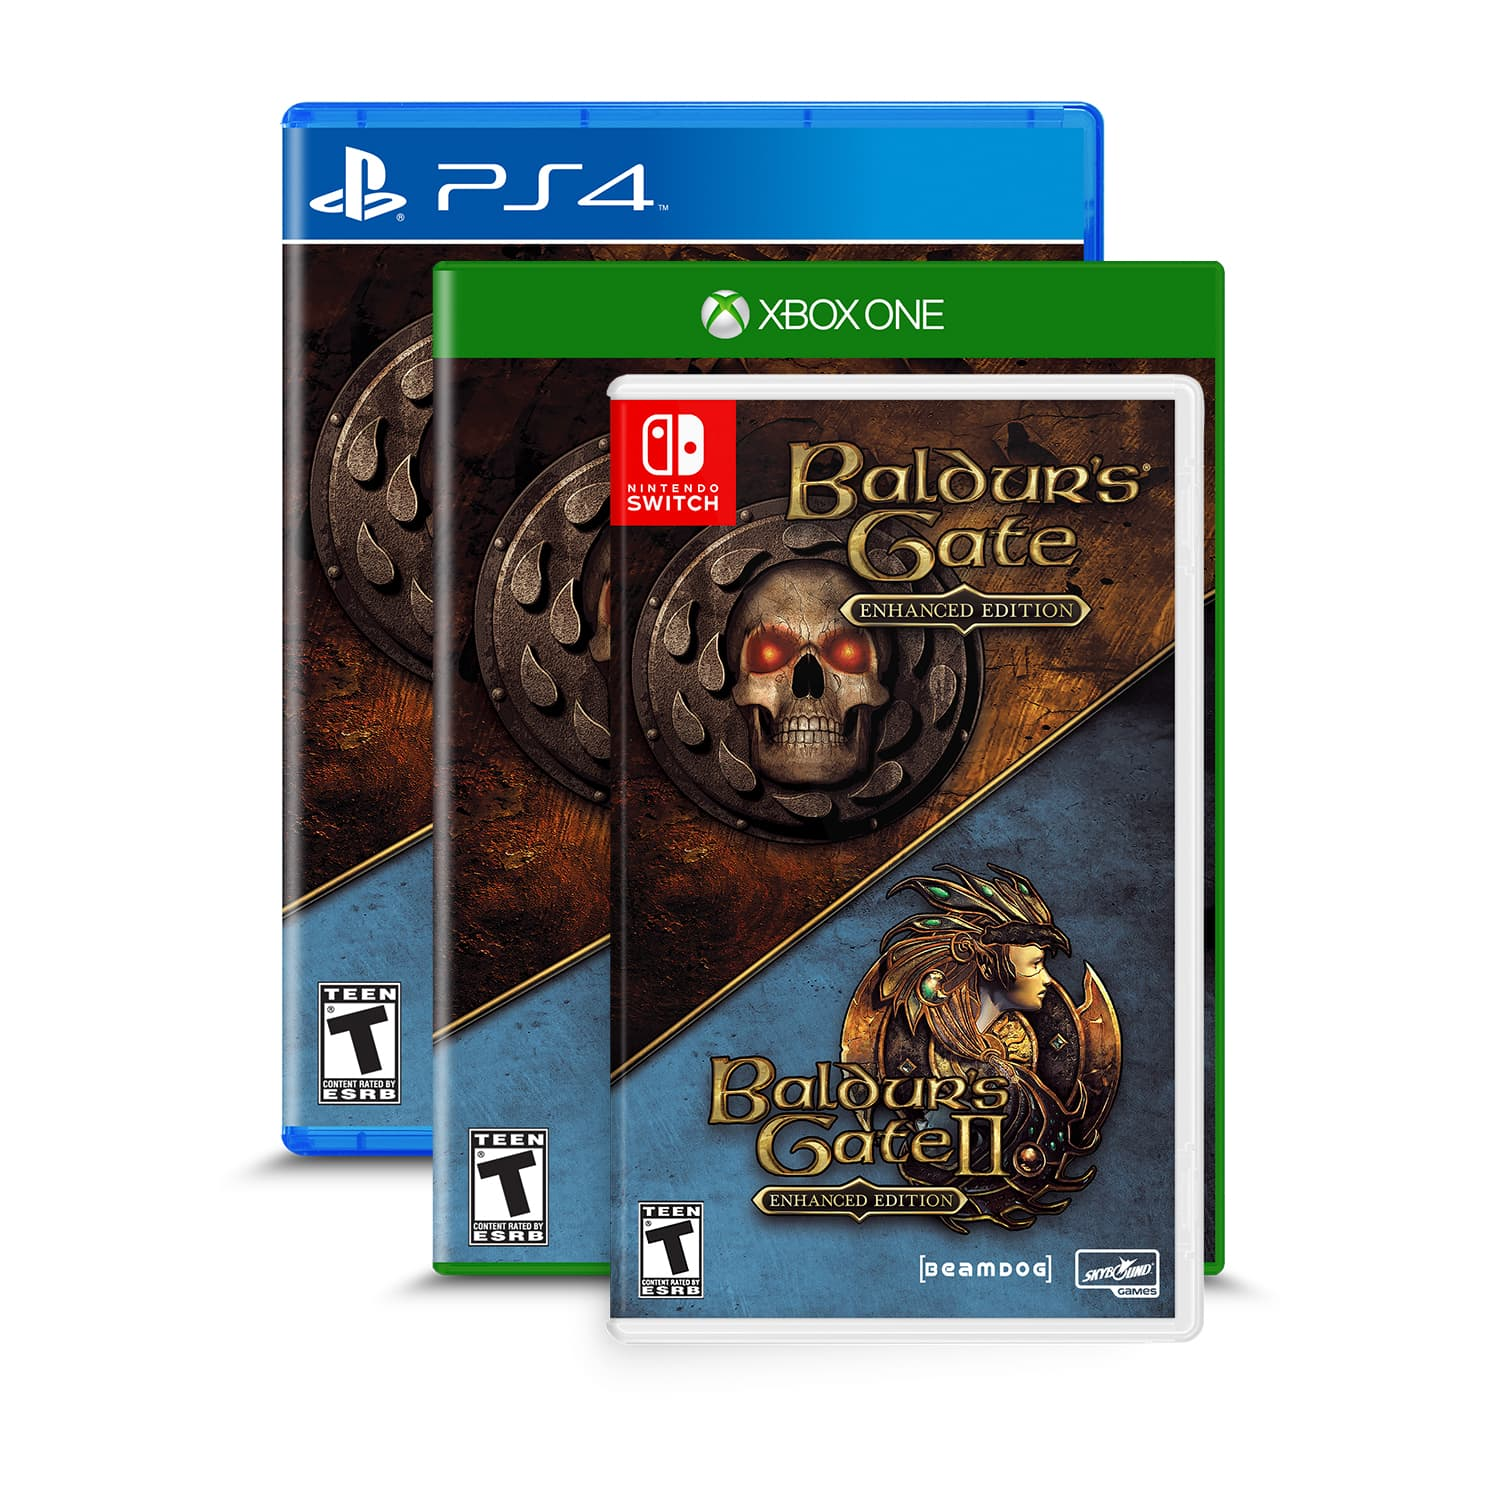 Baldur's Gate & Baldur's Gate II Enhanced Edition